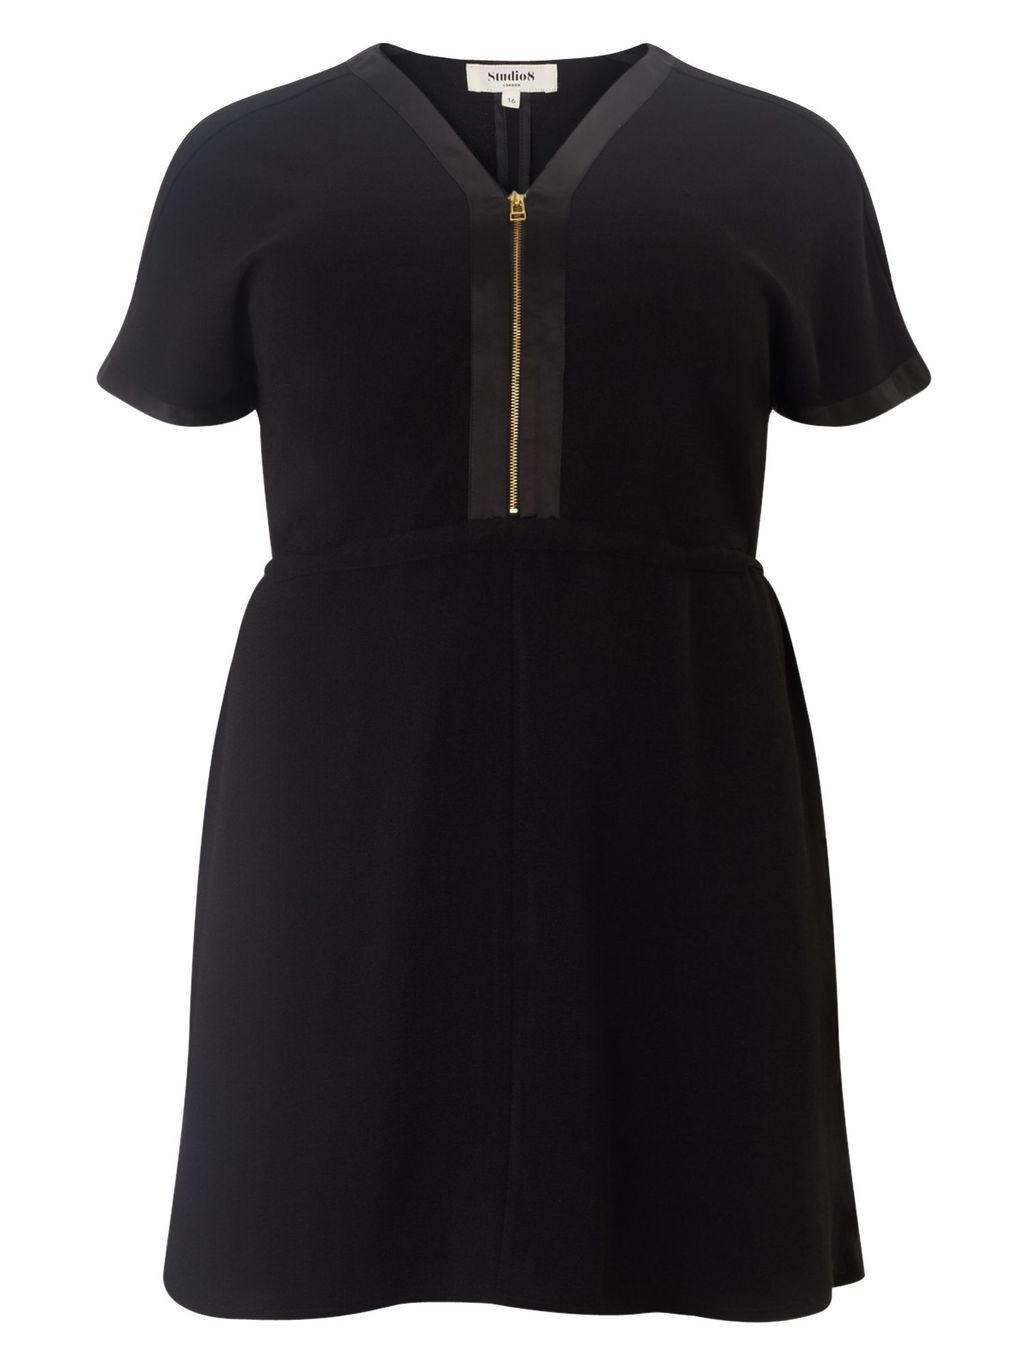 Lisa Tunic Dress, Black - style: tunic; length: mid thigh; neckline: v-neck; pattern: plain; bust detail: ruching/gathering/draping/layers/pintuck pleats at bust; predominant colour: black; occasions: casual, creative work; fit: fitted at waist & bust; fibres: polyester/polyamide - stretch; sleeve length: short sleeve; sleeve style: standard; pattern type: fabric; texture group: other - light to midweight; season: s/s 2016